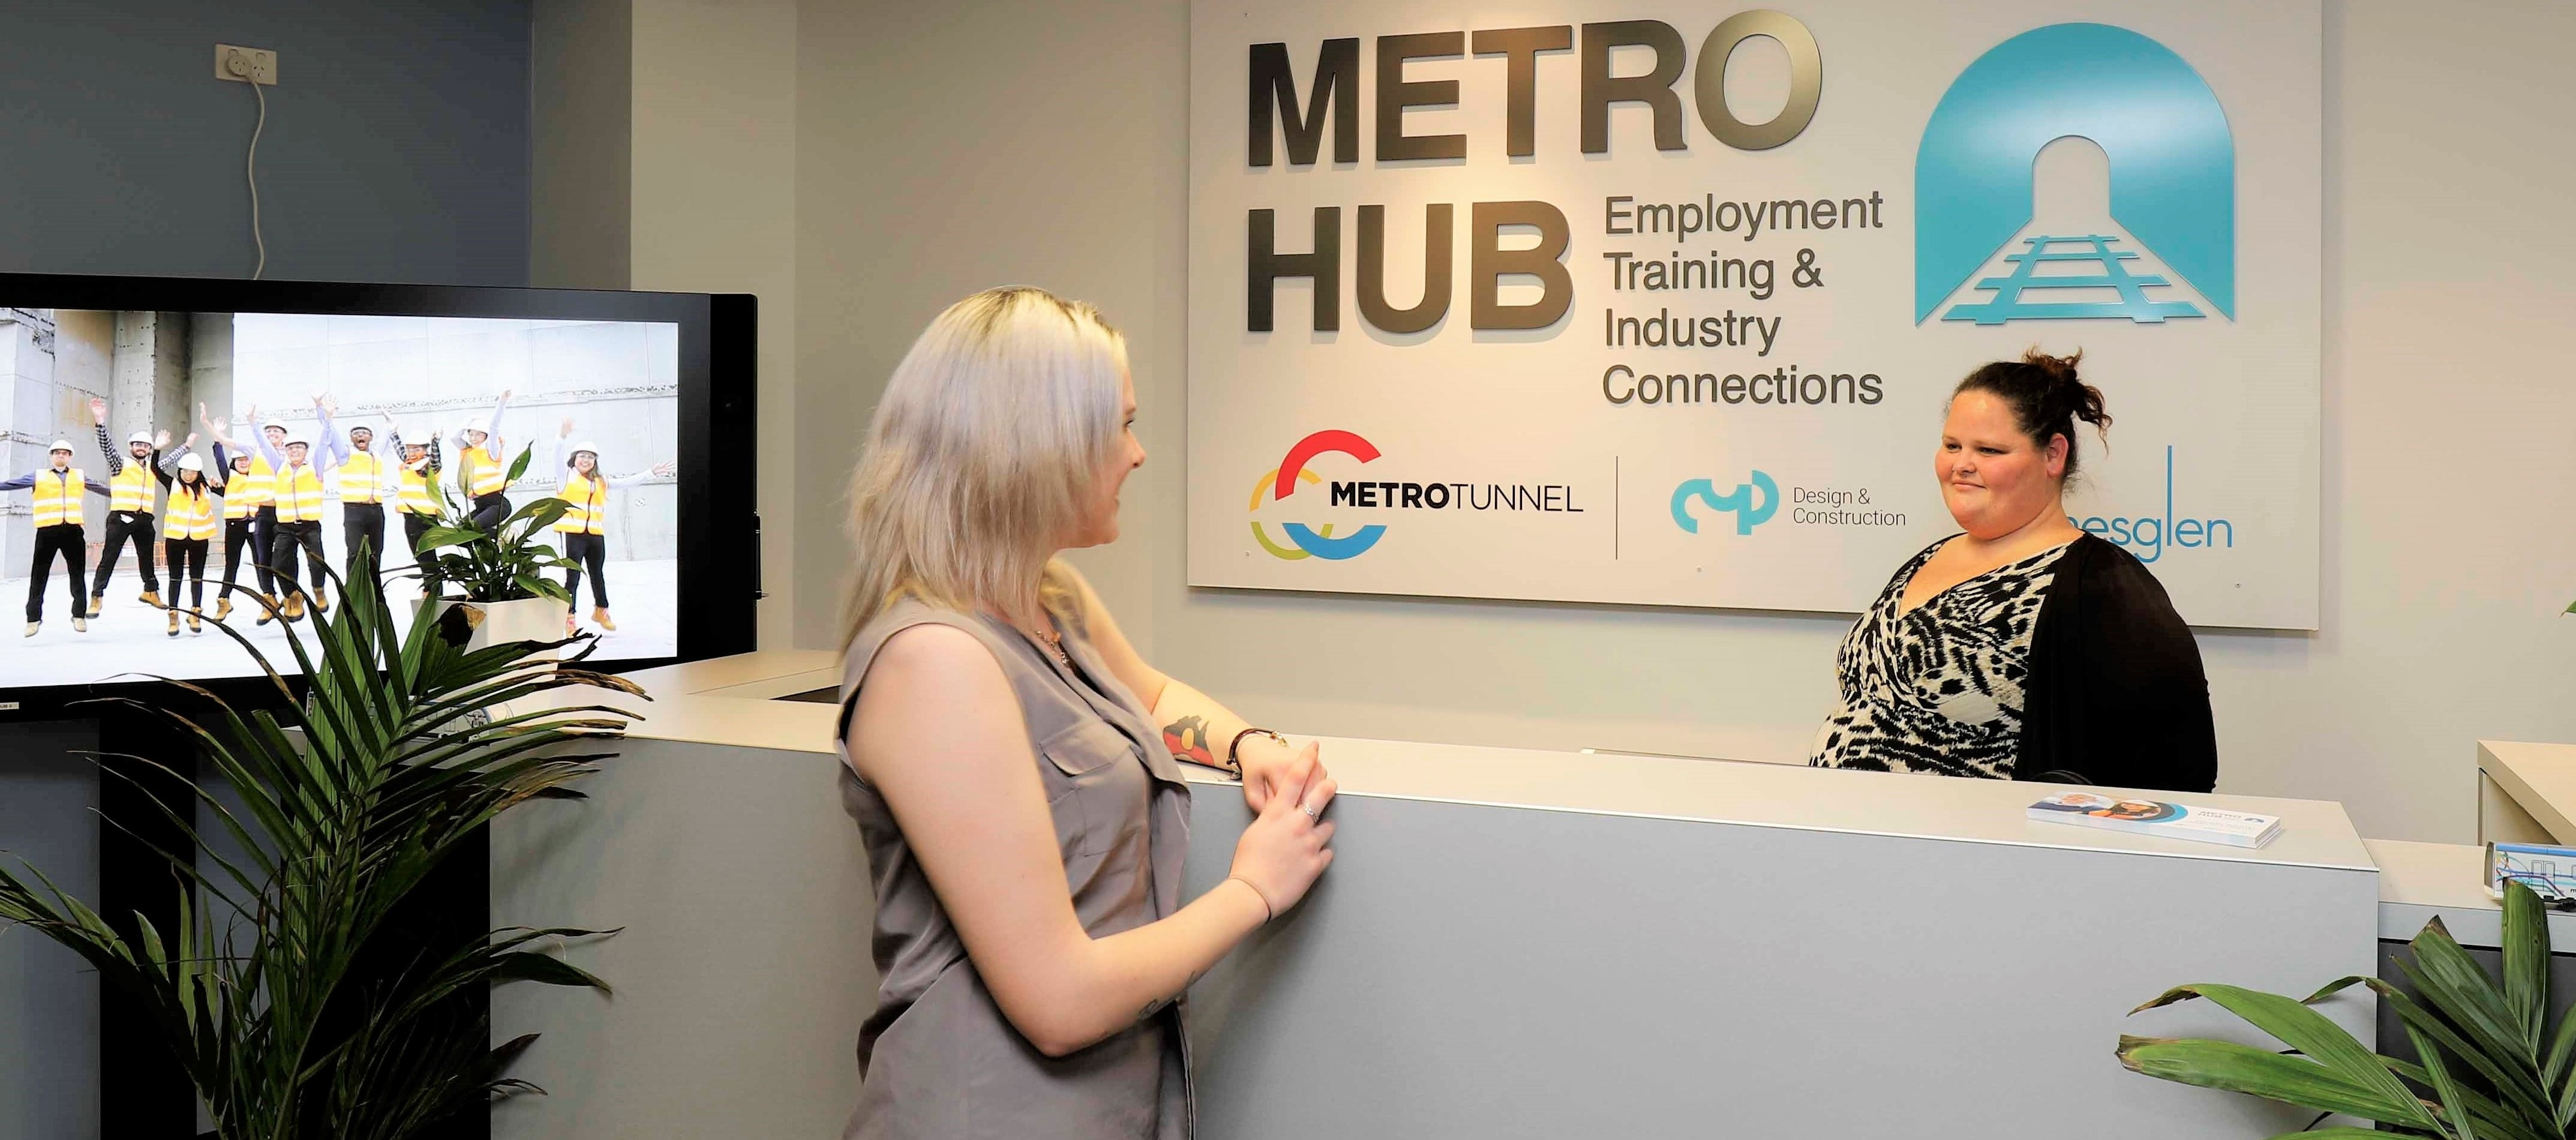 A woman speaks to another woman behind a counter with sign on the wall behind that says 'METRO HUB: Employment Training & Industry Connections